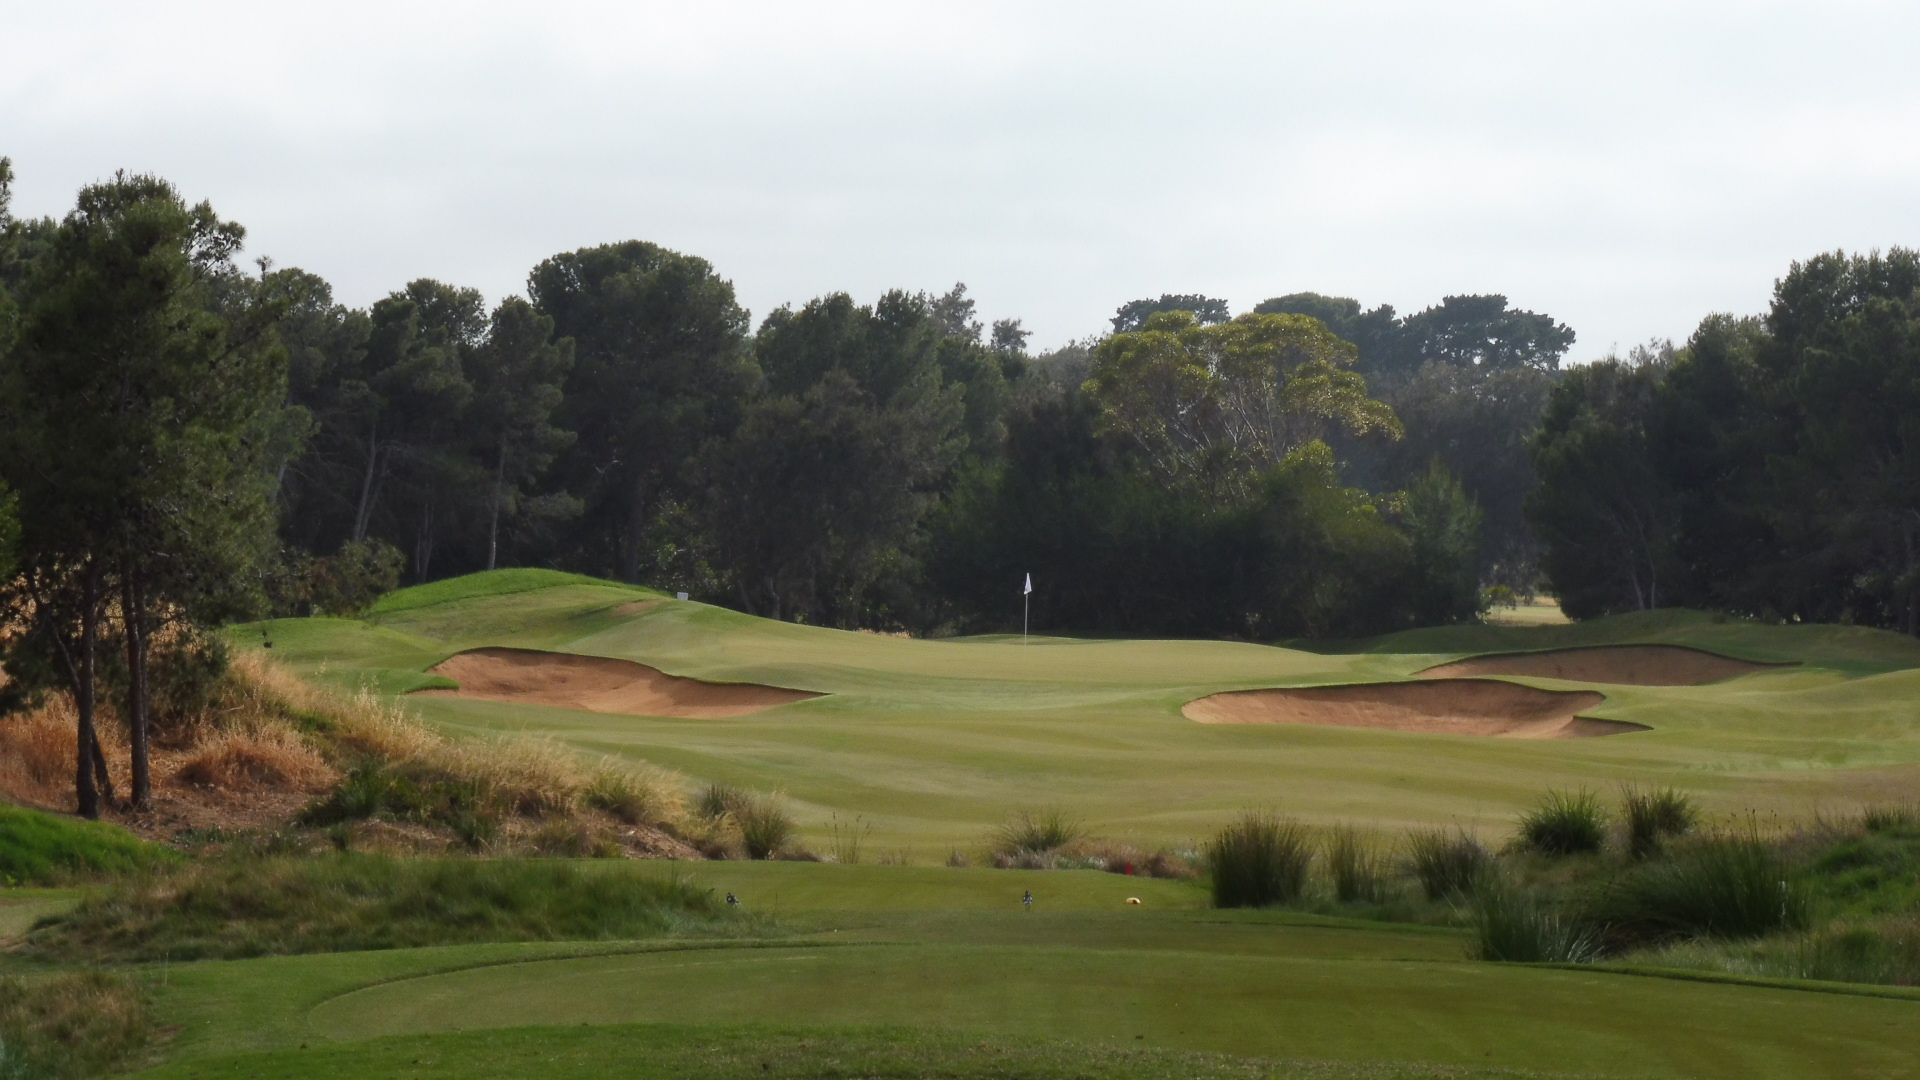 The 19th tee at Kooyonga Golf Club